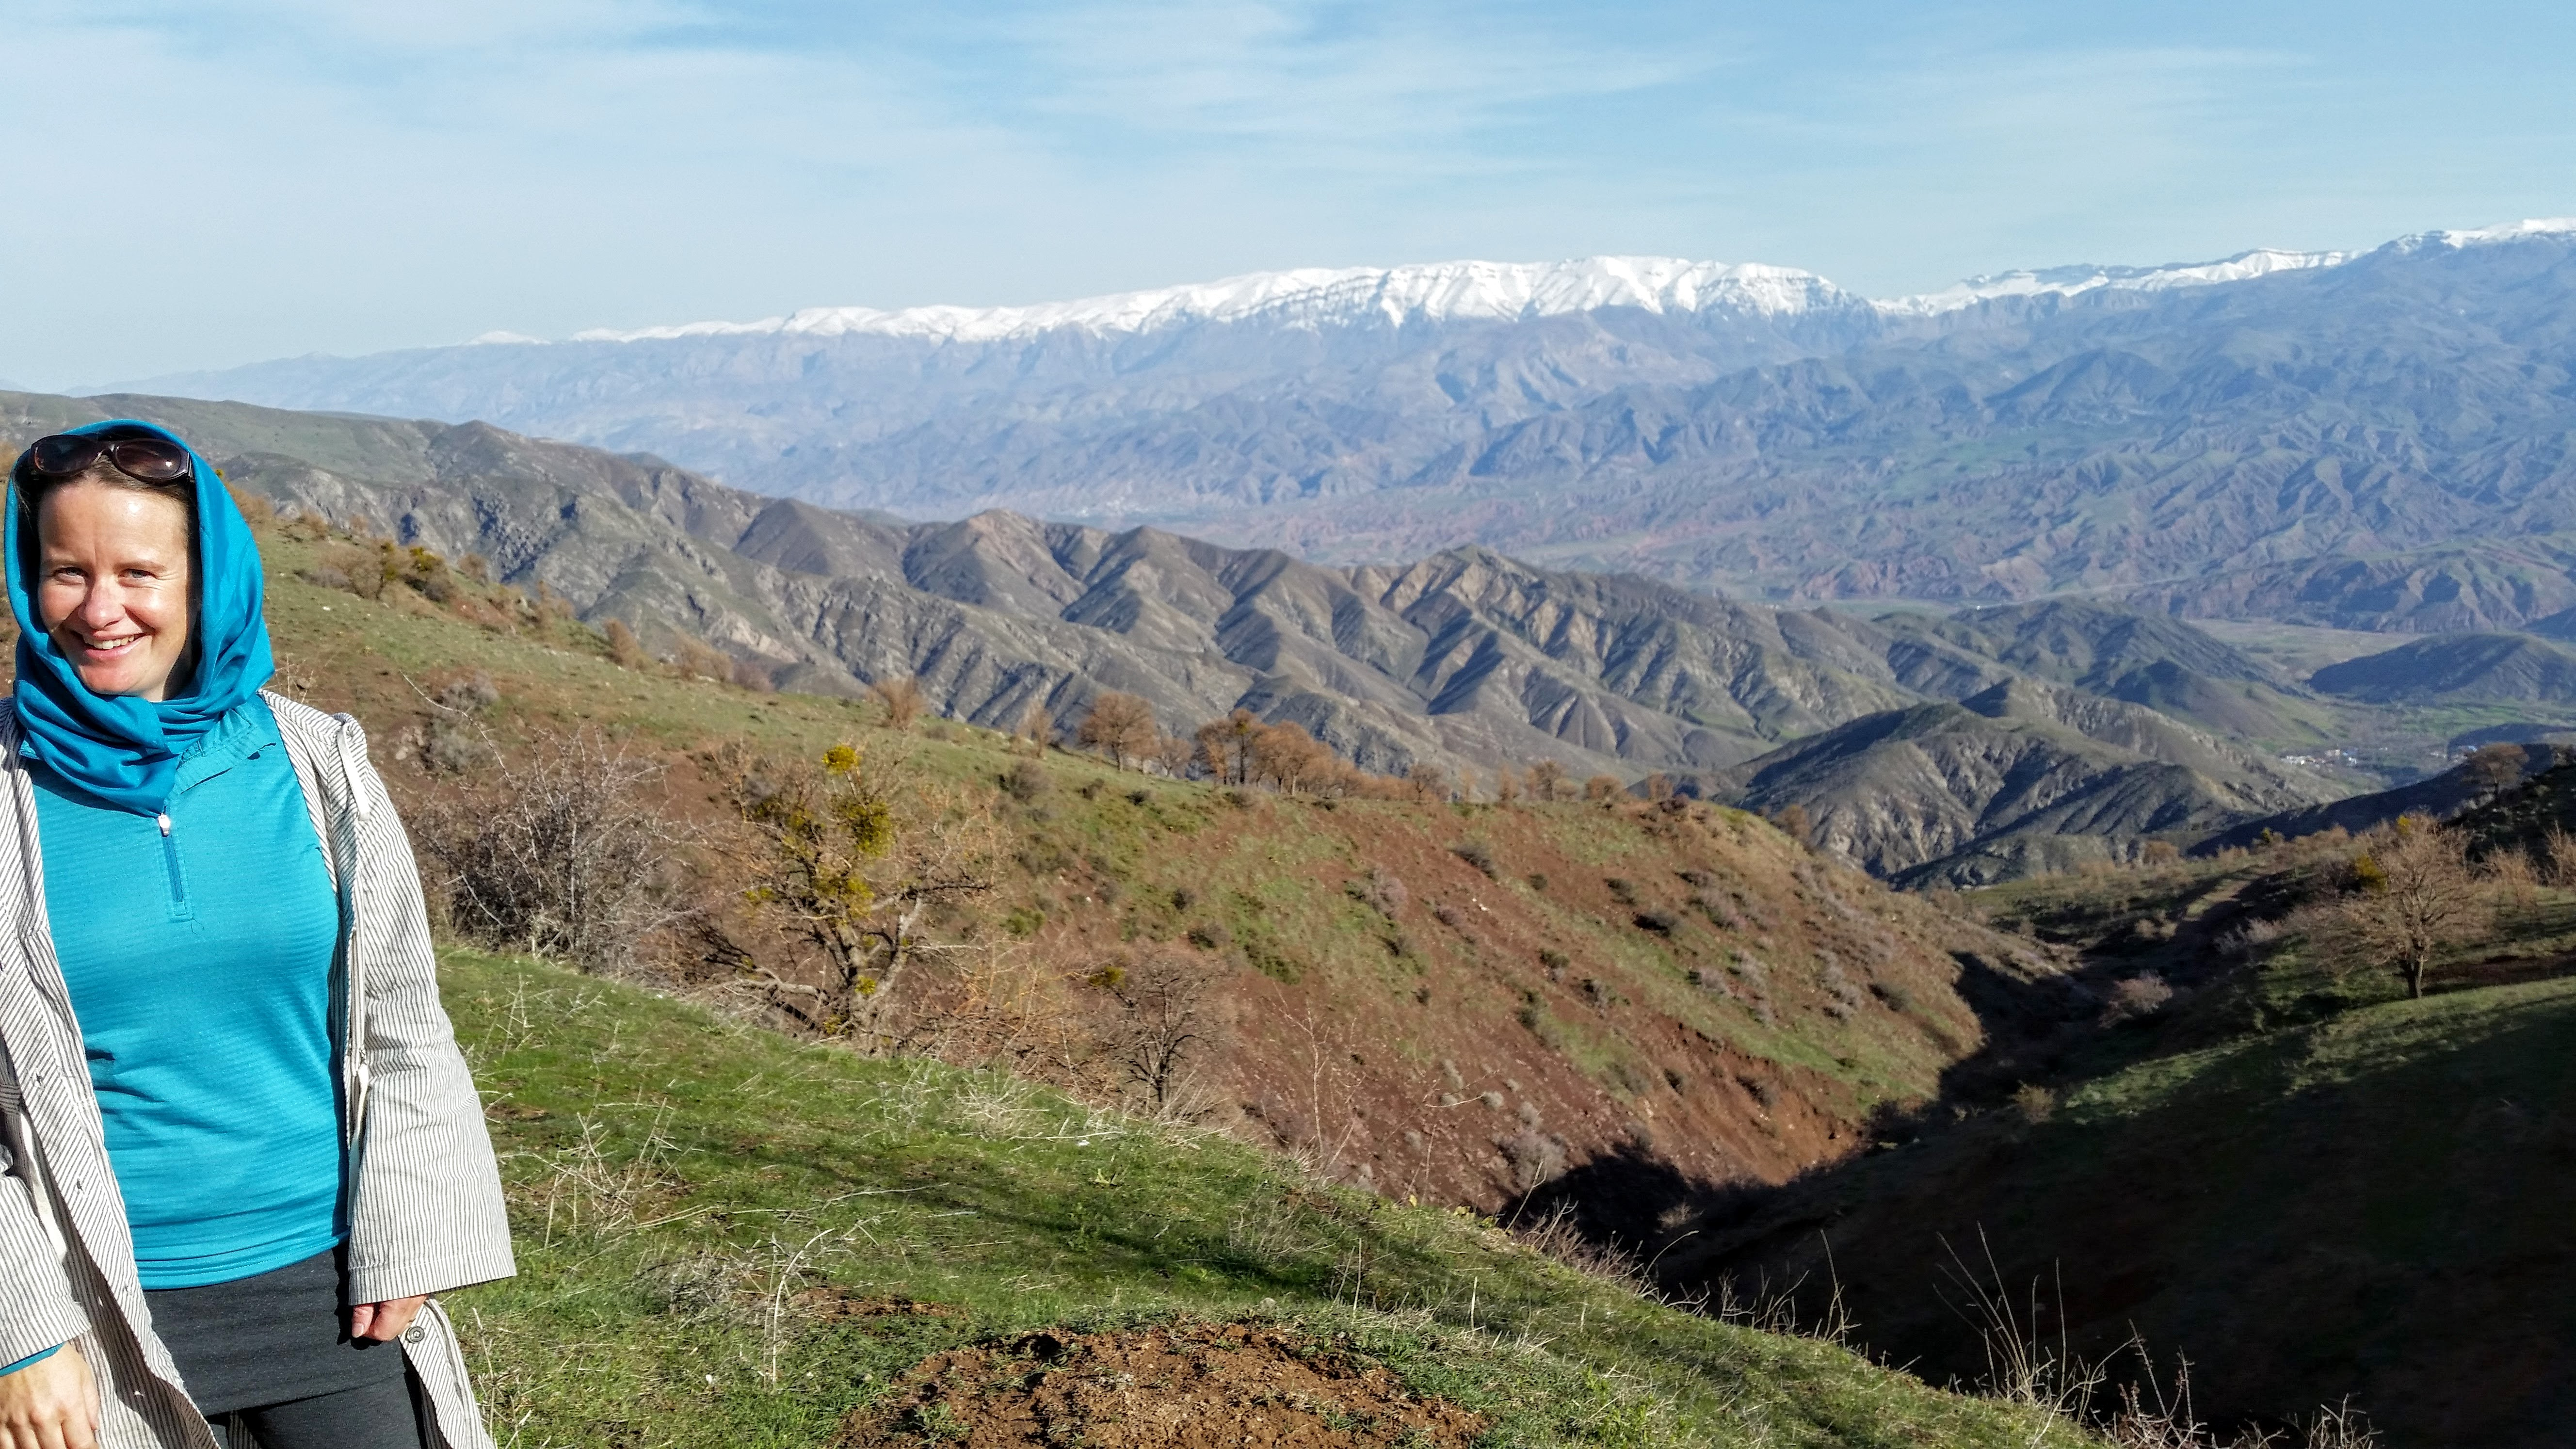 Javer Castle Aras River Valley, Alamut Valley & the Castle of the Assassins   KiwiOutThere